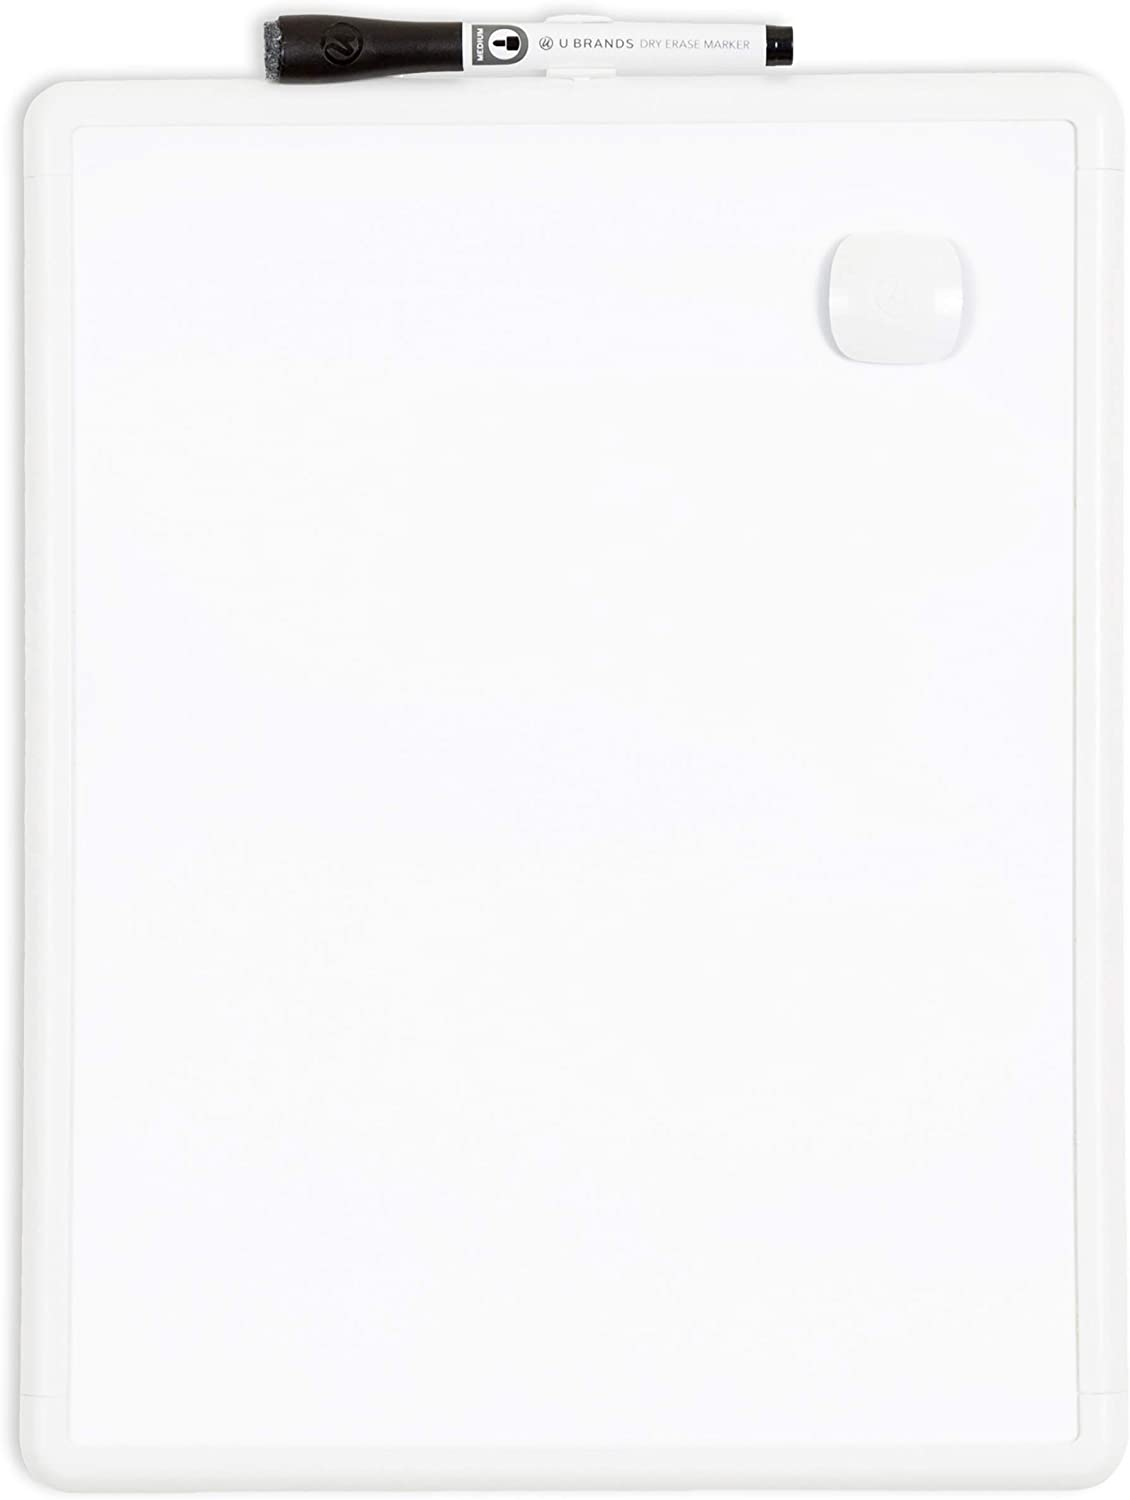 4.5 x 2.25 x 1 Inches White Frame /&  Brands Magnetic Dry Erase Board Eraser U Brands Contempo Magnetic Dry Erase Board Felt Bottom Surface 11 x 14 Inches